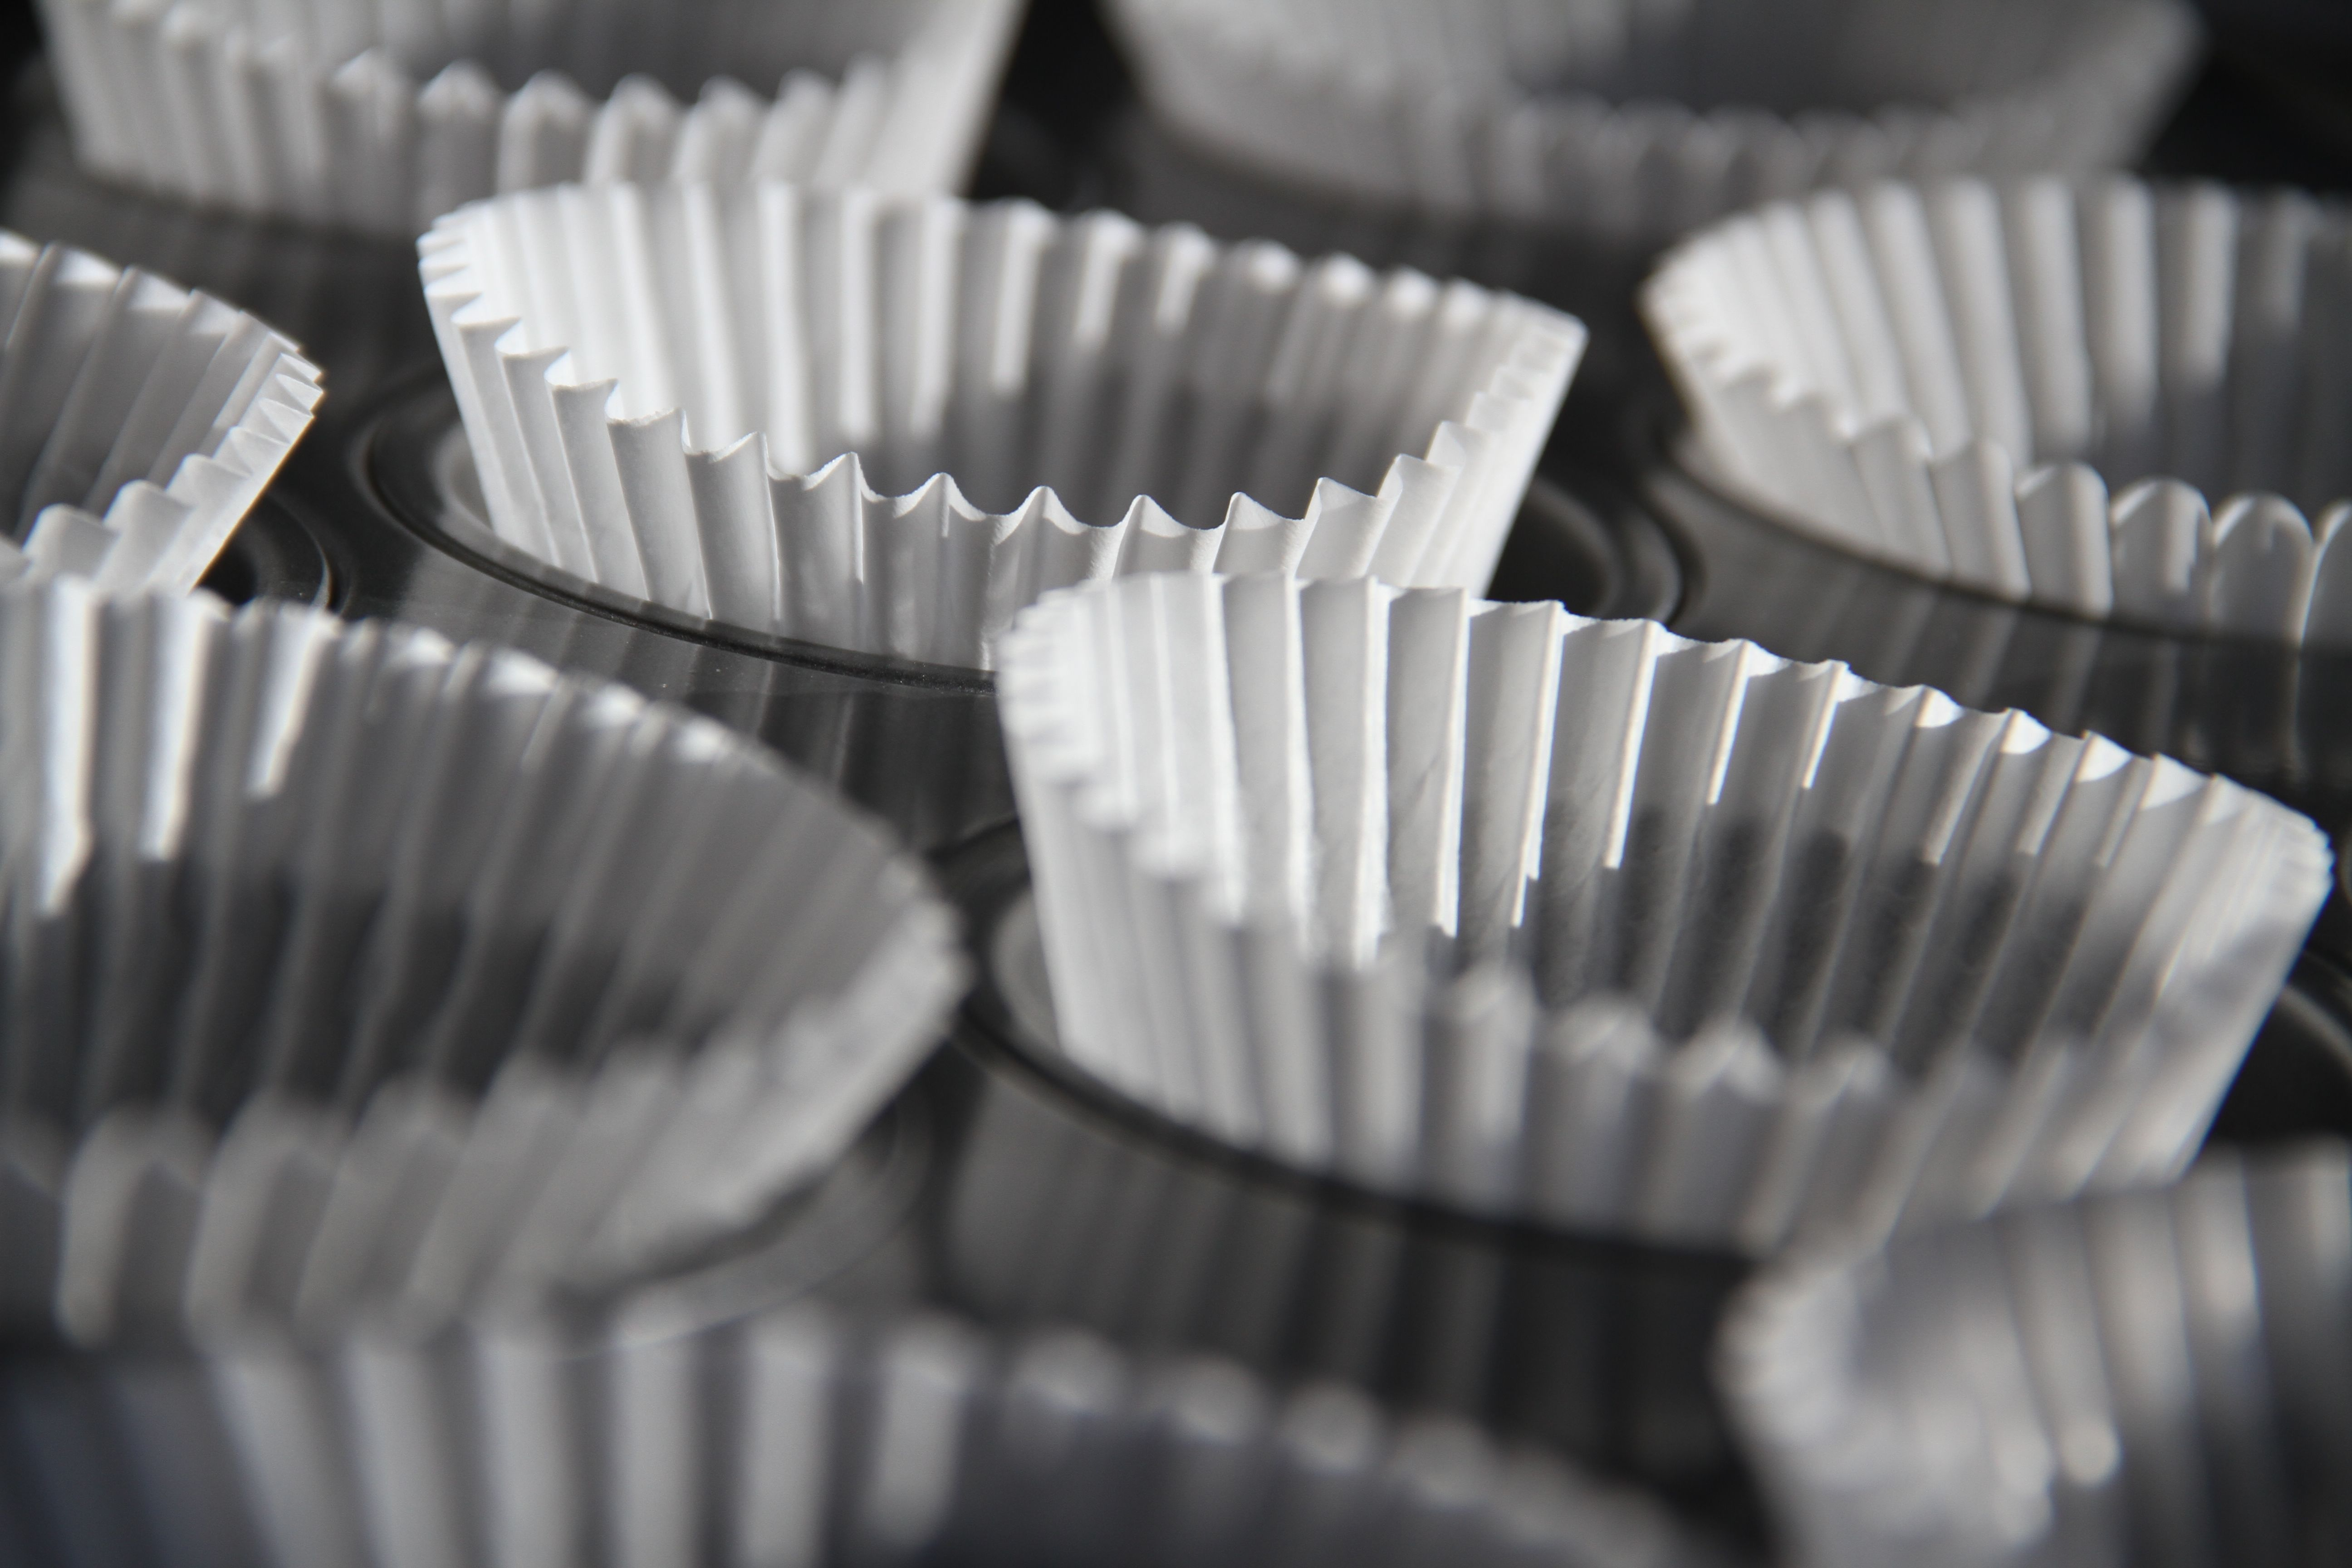 Nothing sweeter than cupcake liners. Well, except maybe the actual cupcakes.